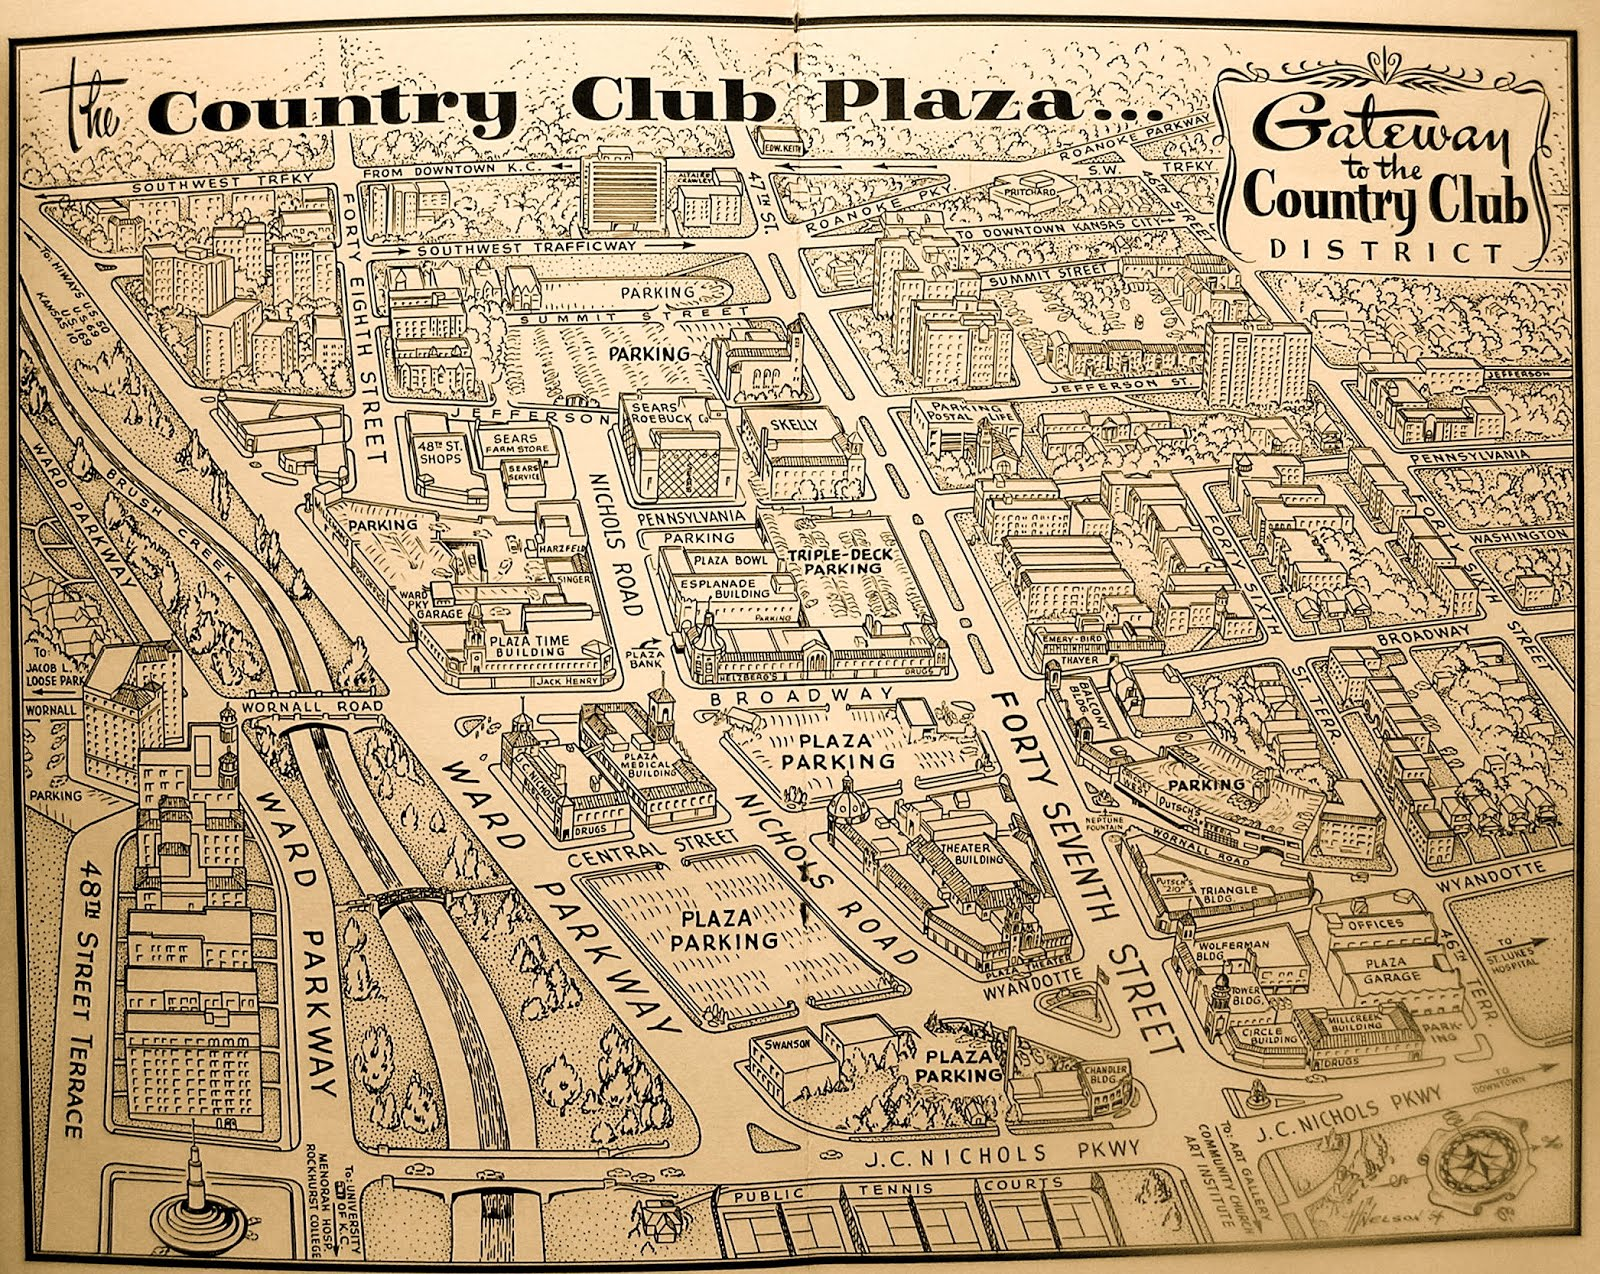 paris of the plains: The lost trees of the Country Club Plaza on